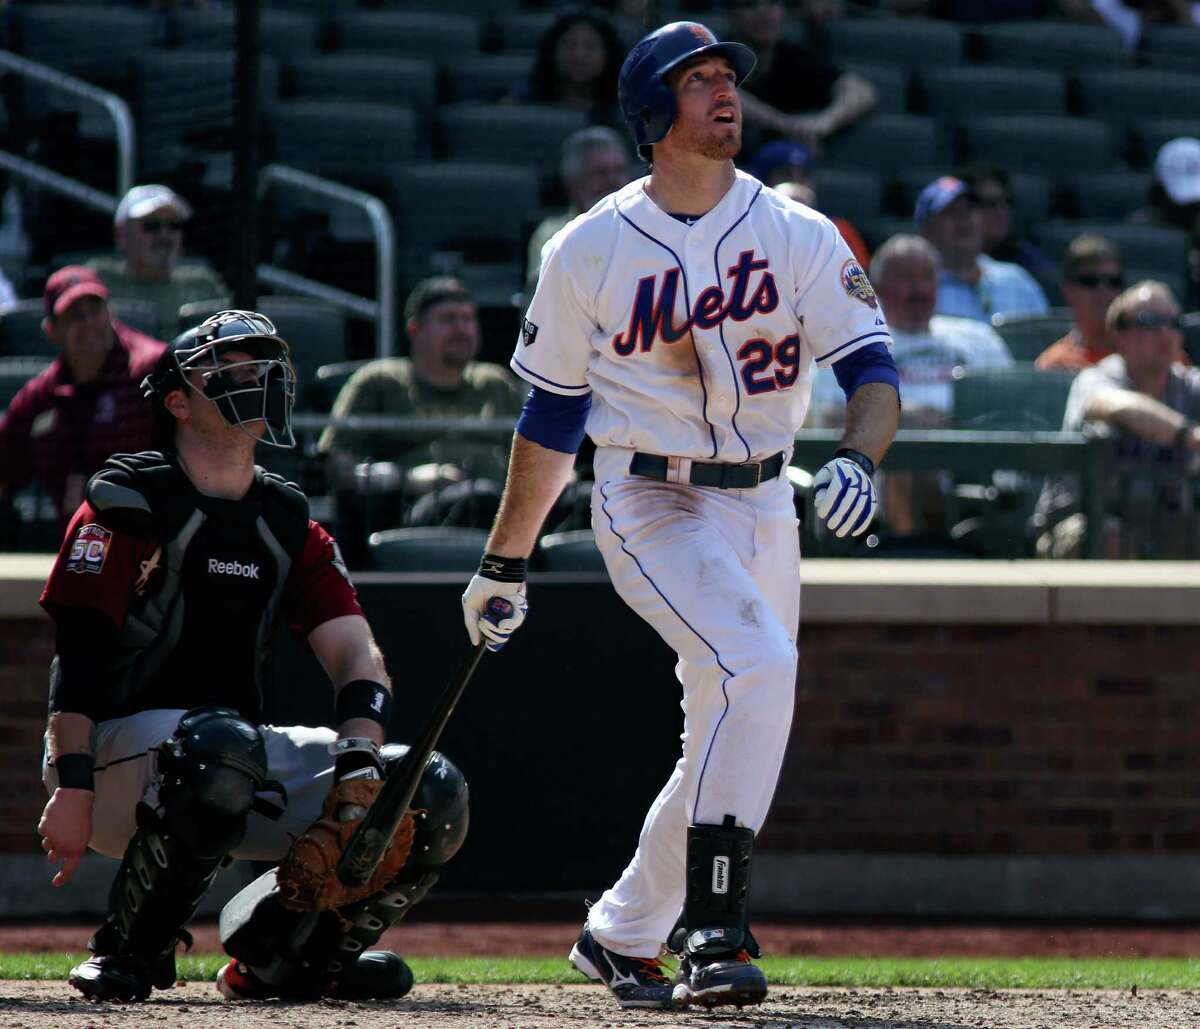 New York Mets' Ike Davis, right, watches his game-winning home run in the ninth inning of a baseball game against the Houston Astros at Citi Field in New York, Sunday, Aug. 26, 2012. Astros catcher Chris Snyder, left, looks on. (AP Photo/Craig Ruttle)